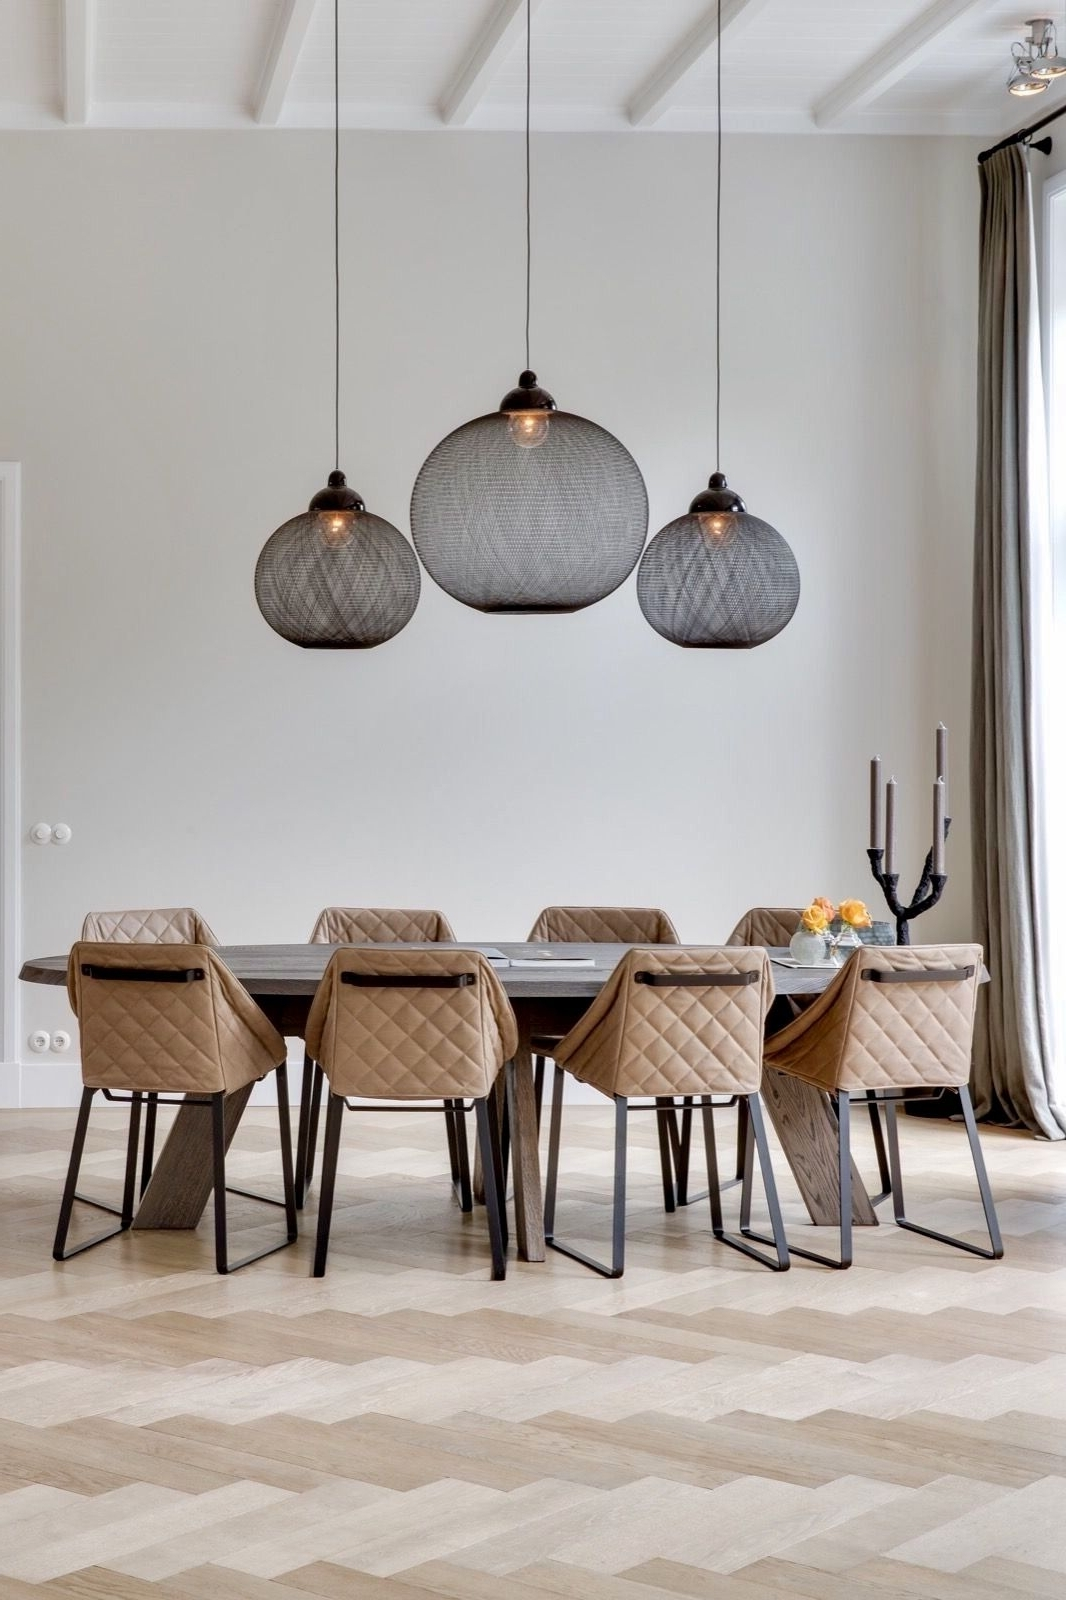 22 Best Ideas Of Pendant Lighting For Kitchen, Dining Room And Regarding 2017 Dining Tables Lights (Gallery 5 of 25)